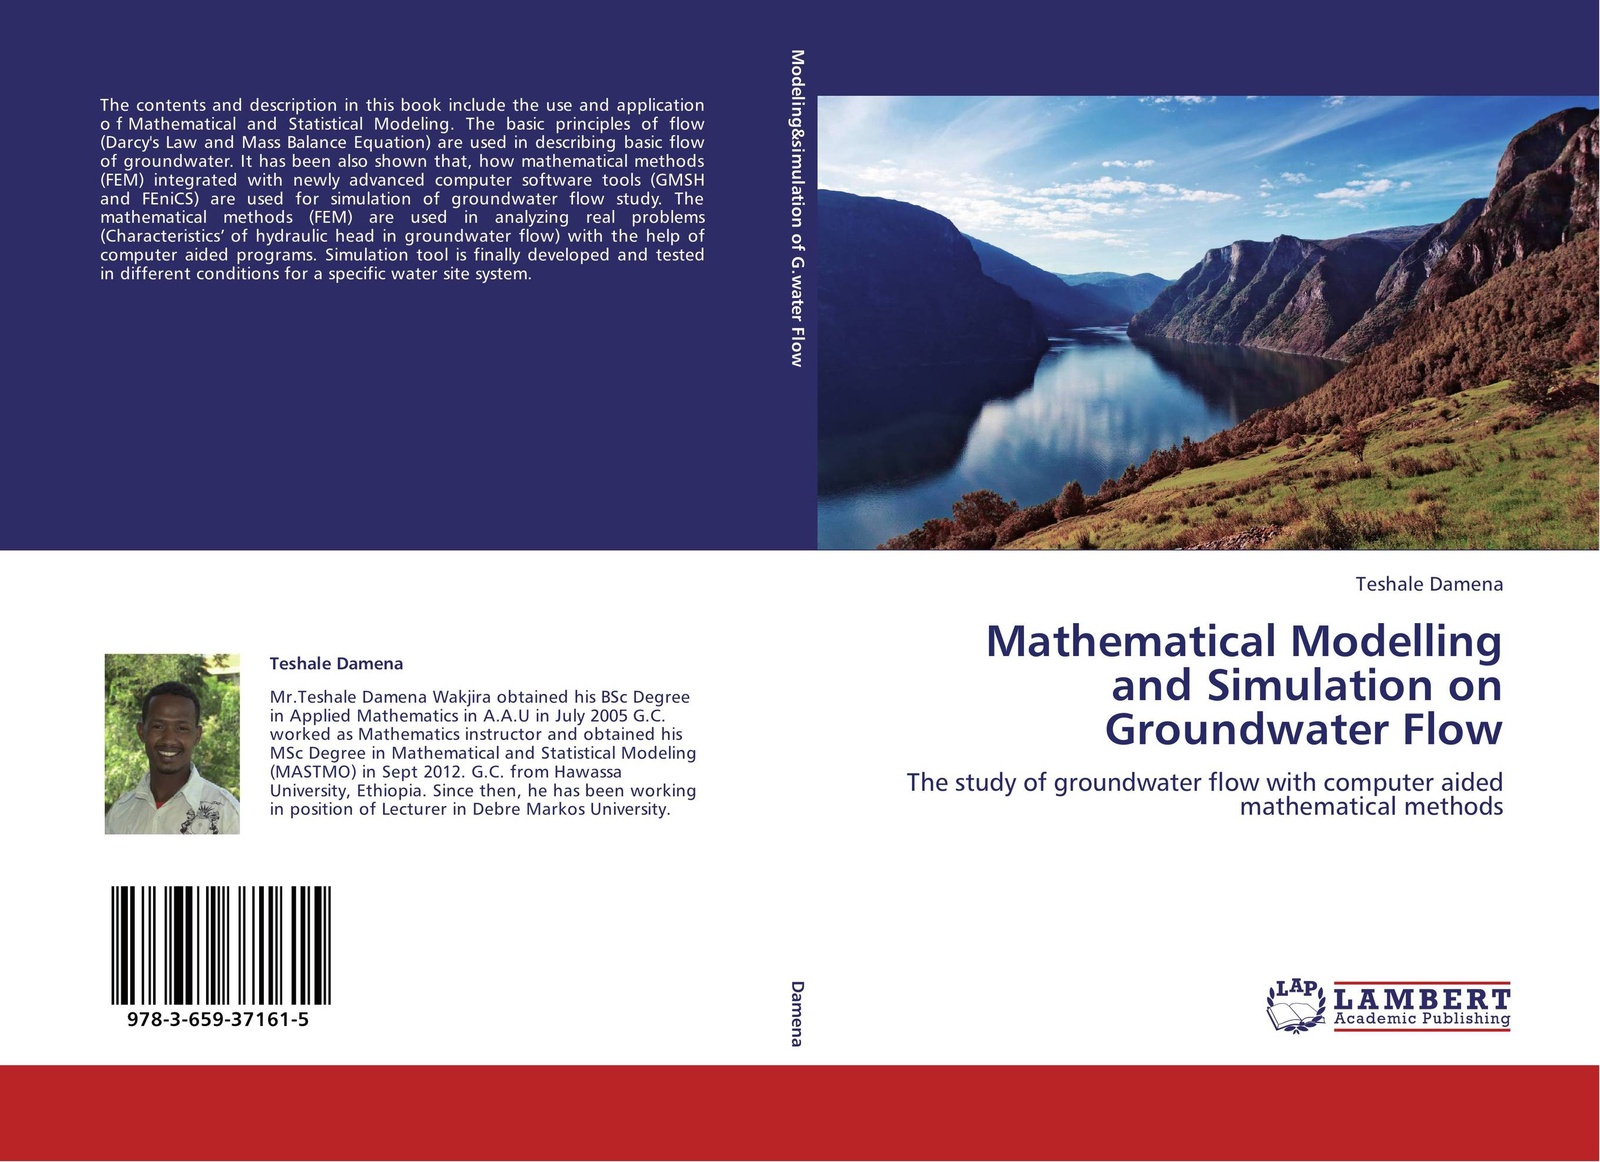 Teshale Damena Mathematical Modelling and Simulation on Groundwater Flow peter glarborg chemically reacting flow theory modeling and simulation